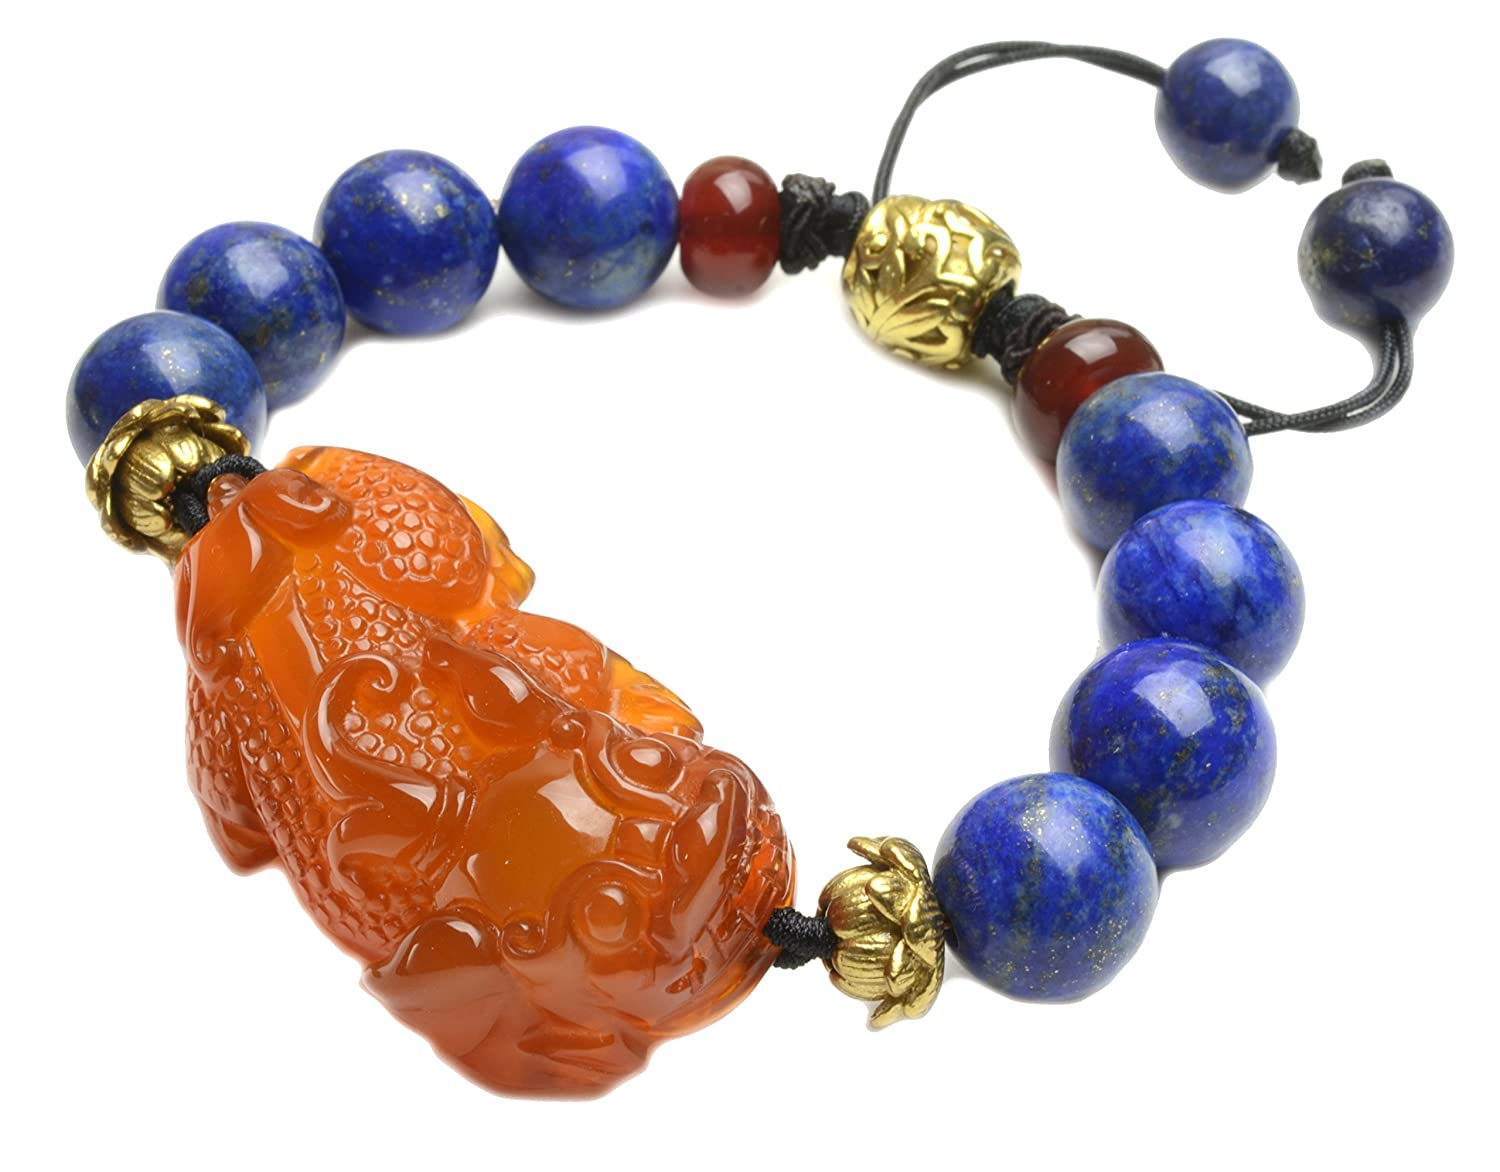 Luxury Fortune Tiger Red Chalcedony Lapis lazuli Amulet Bracelet - Fortune Feng Shui Jewelry lOrM5jL